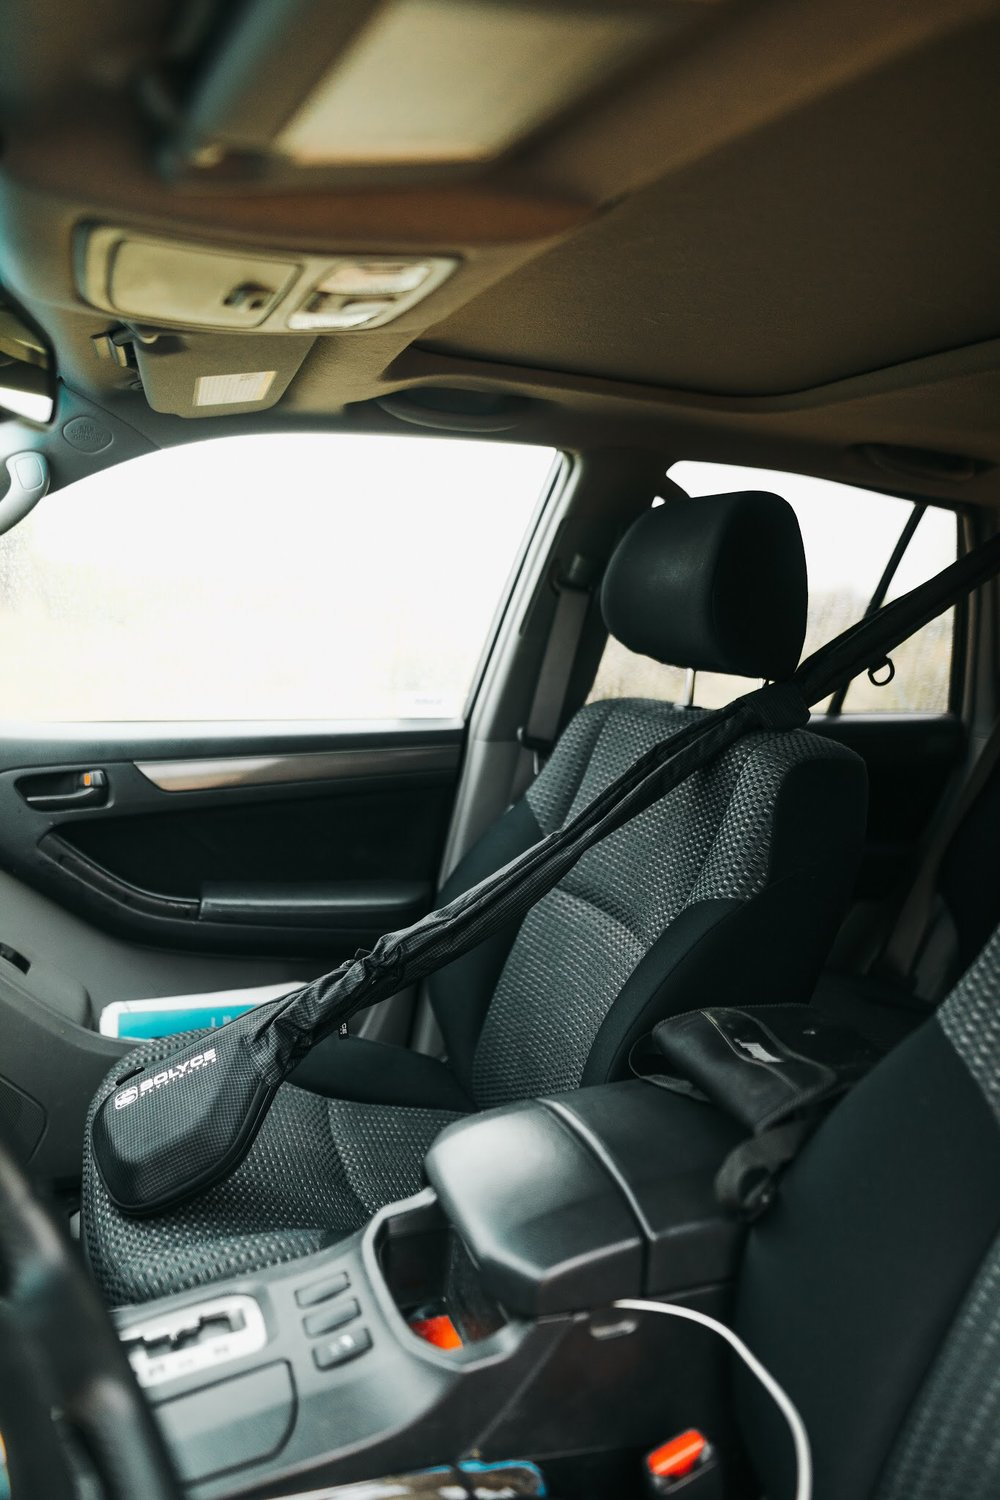 Fit rigged fly rod easily in vehicle using FRS-9